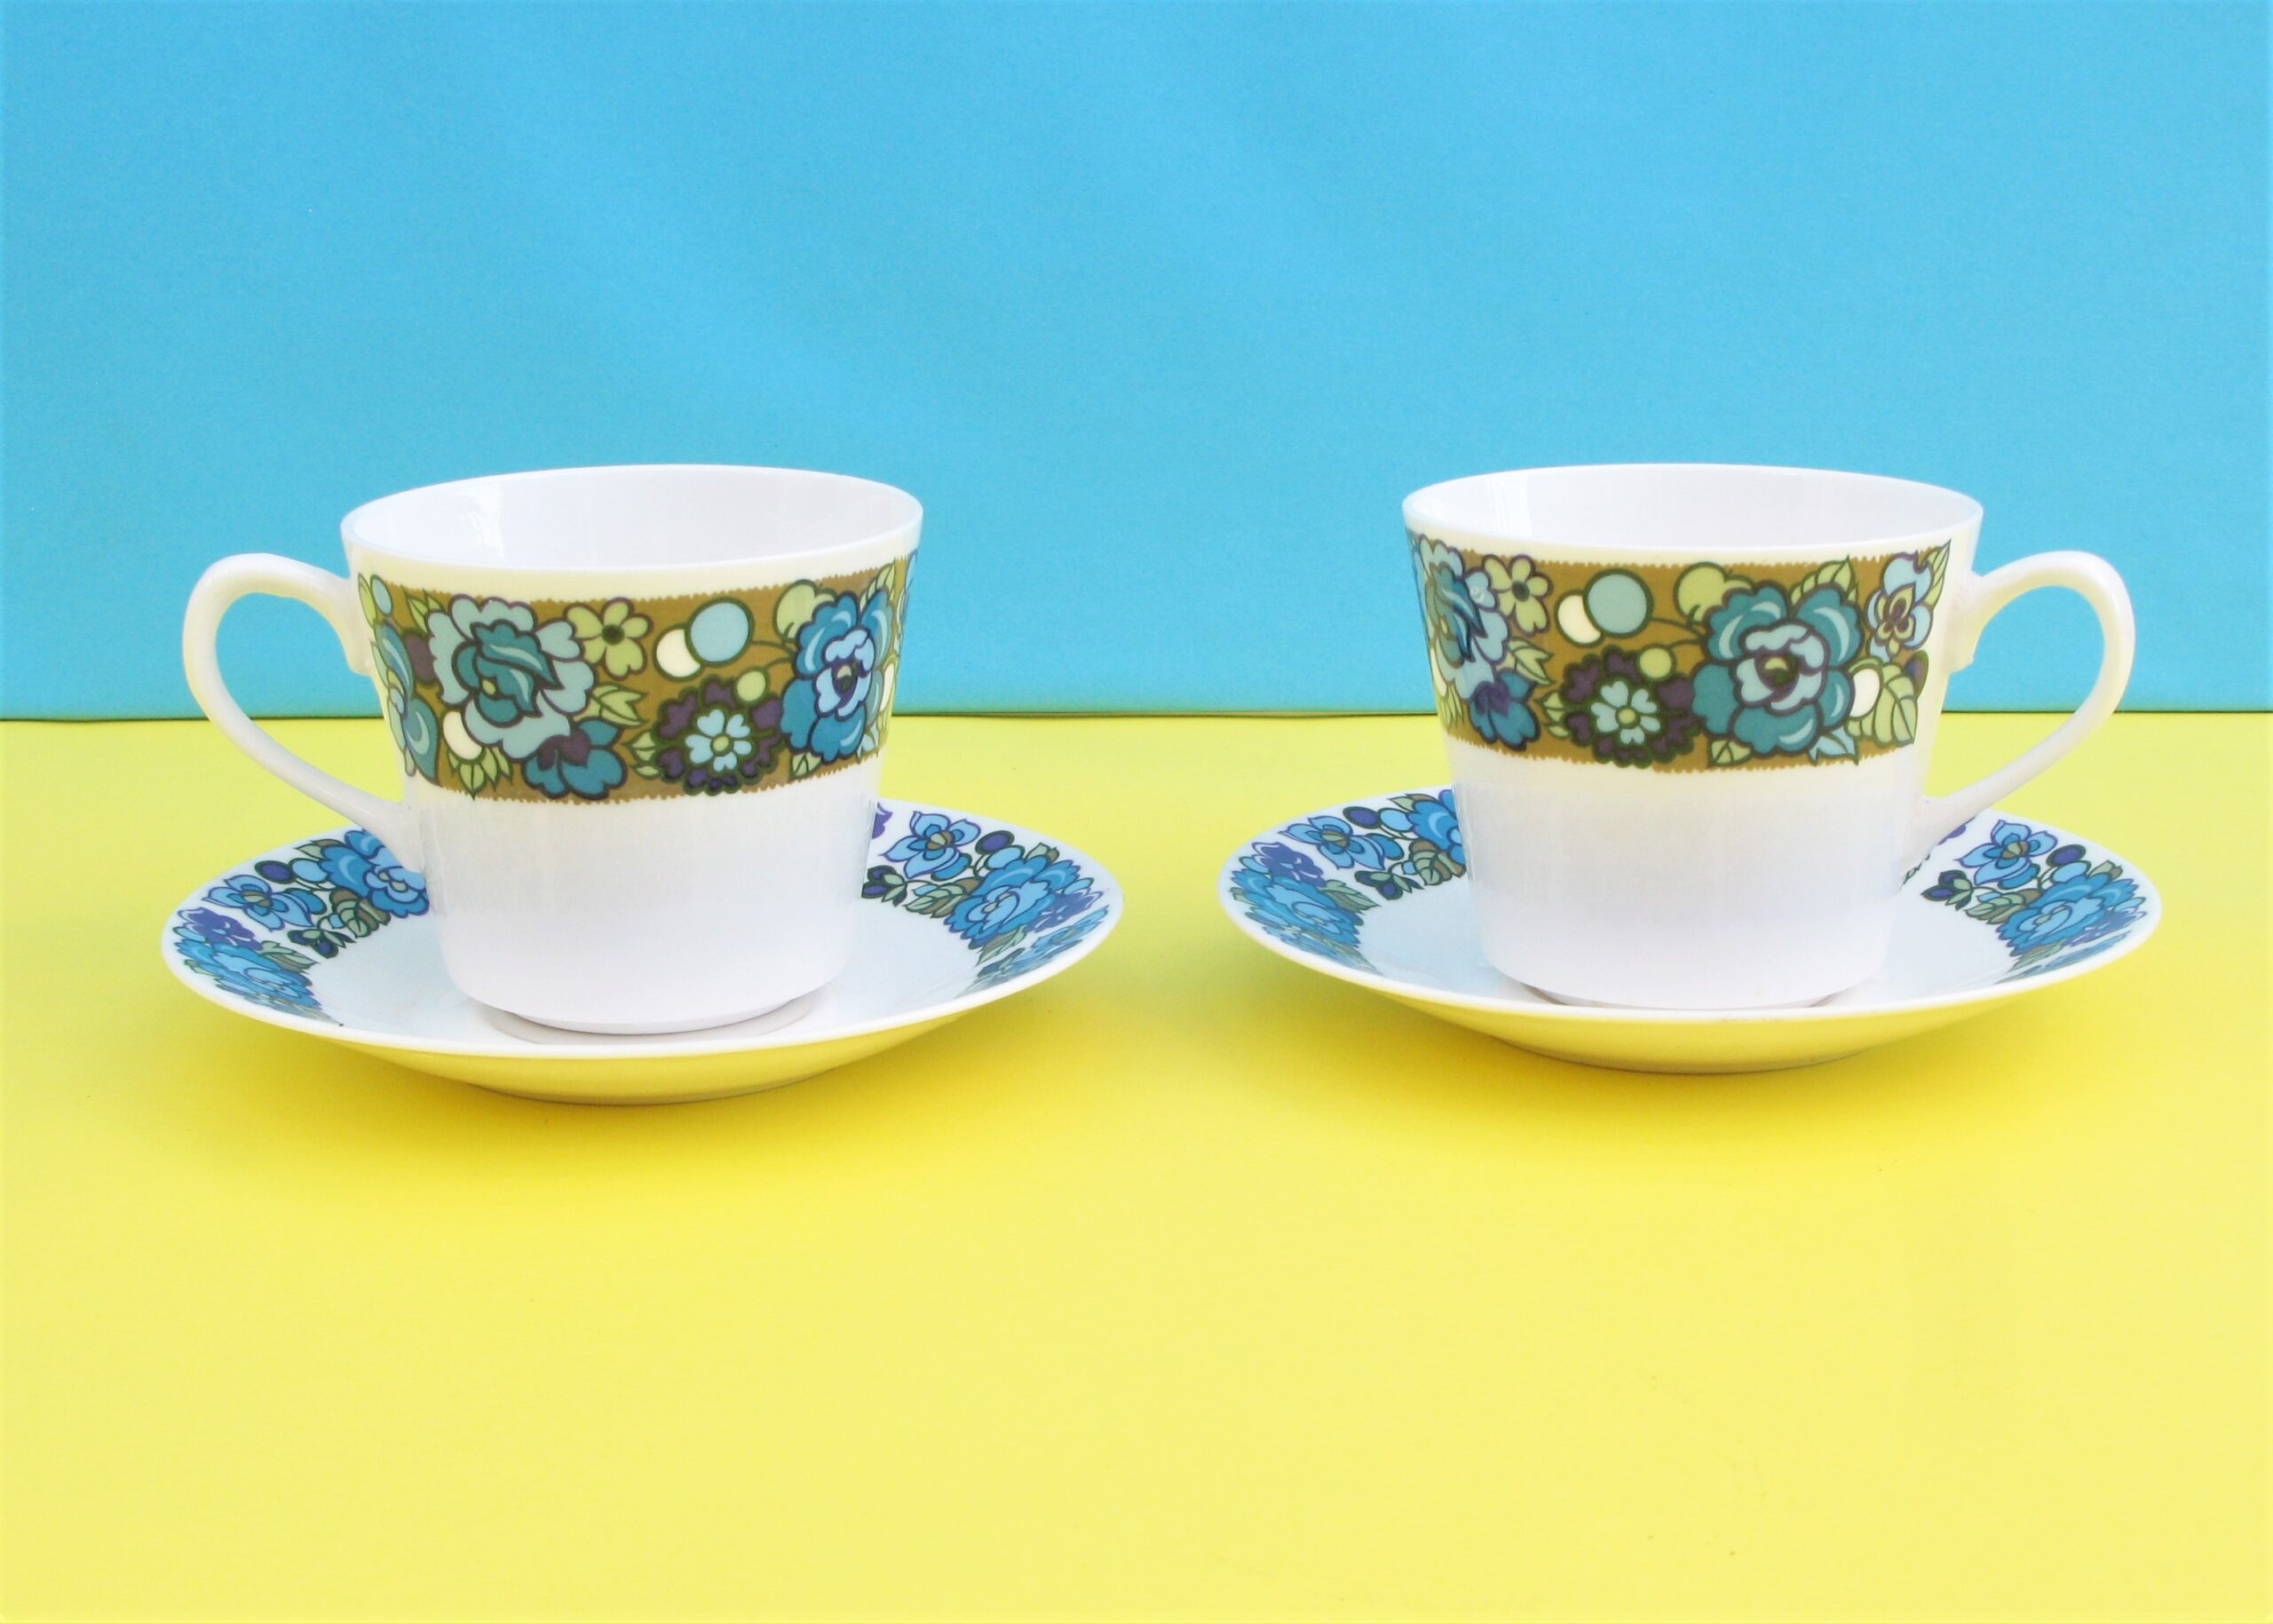 Vintage Ridgway Amanda Bone China Cups Saucers Set 2 60s 70s Rachel S Vintage Retro